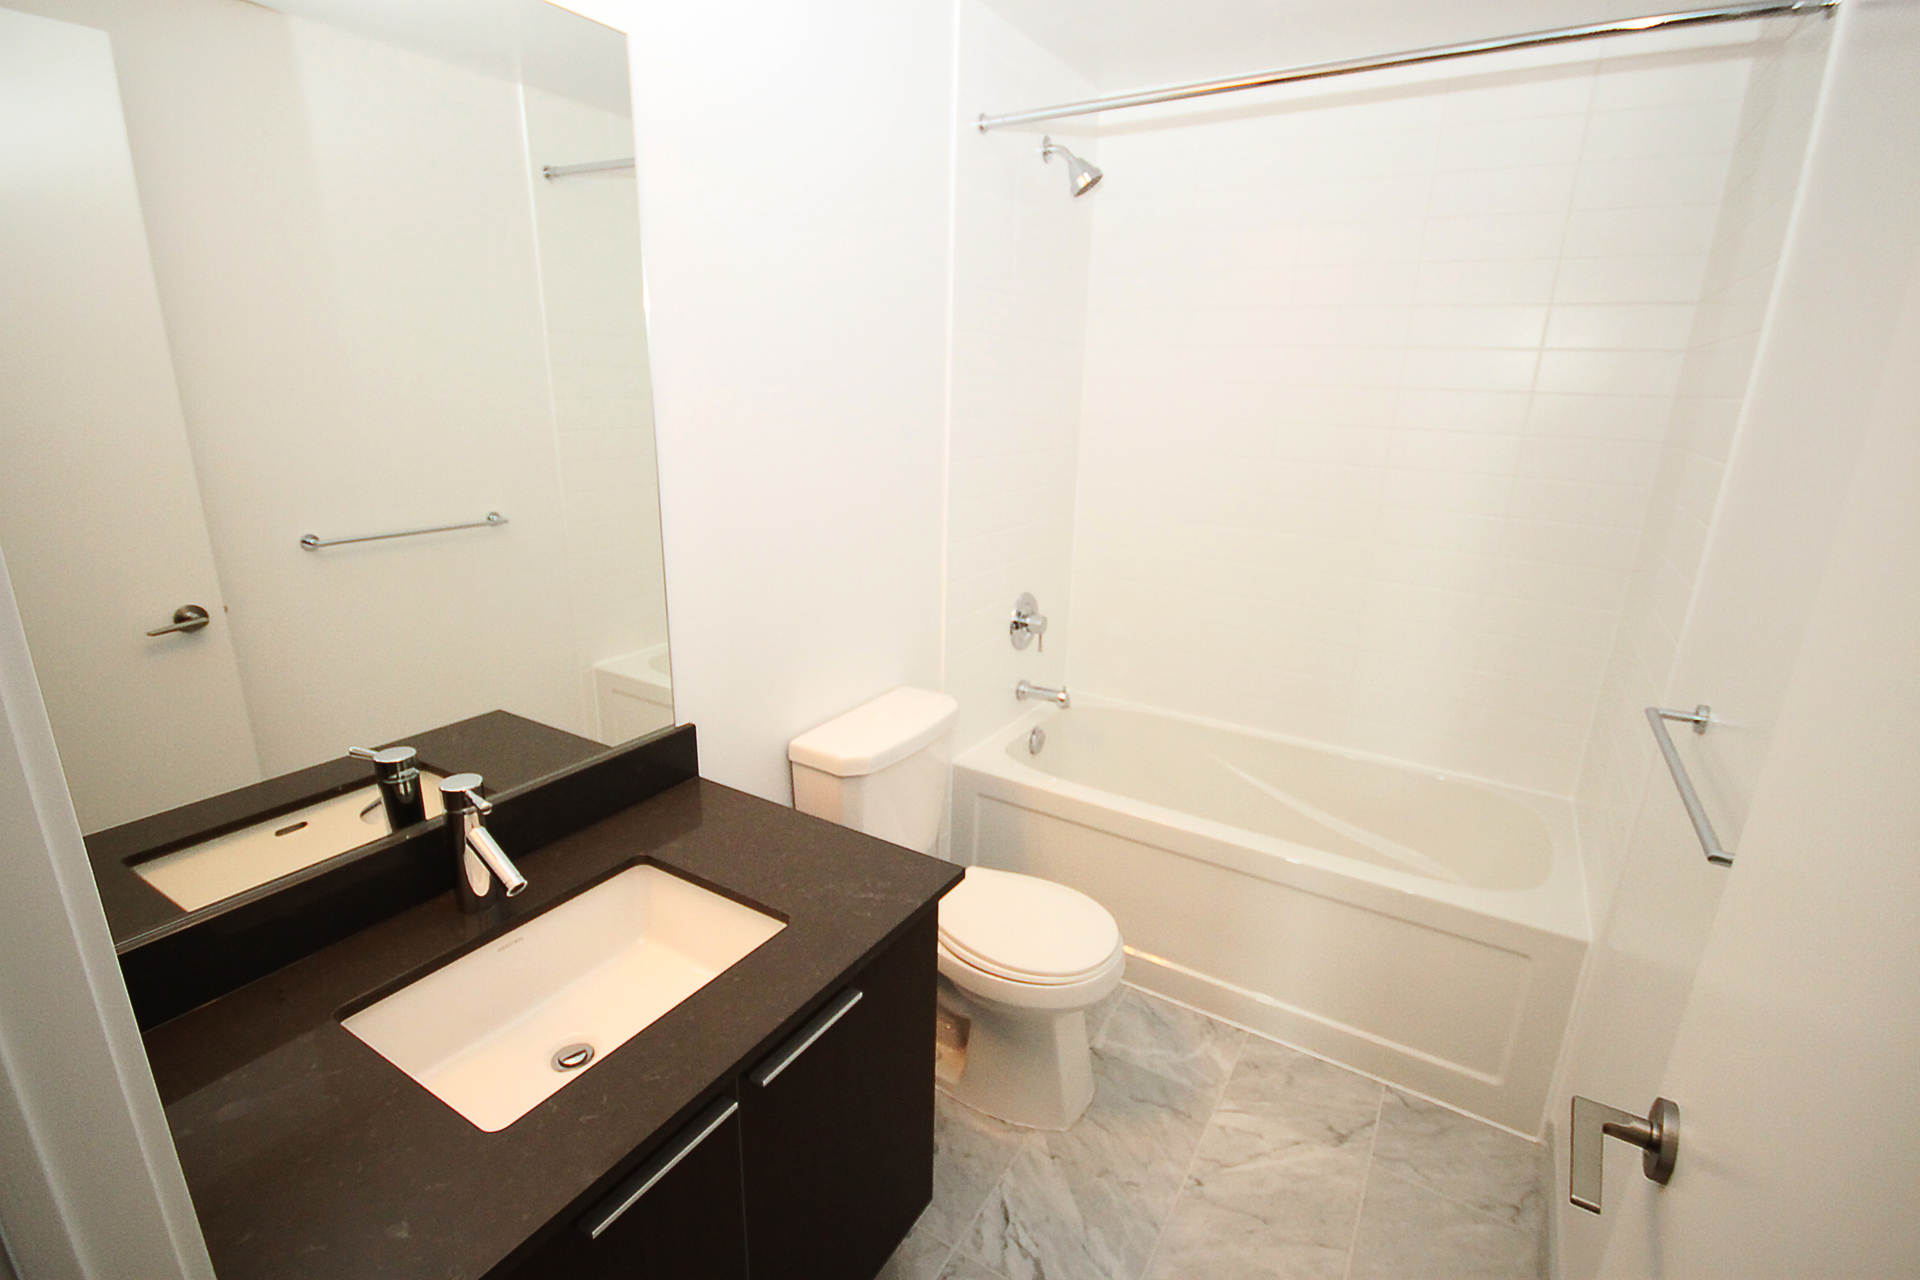 4 Piece Bathroom at 4009 - 10 Park Lawn Road, Mimico, Toronto